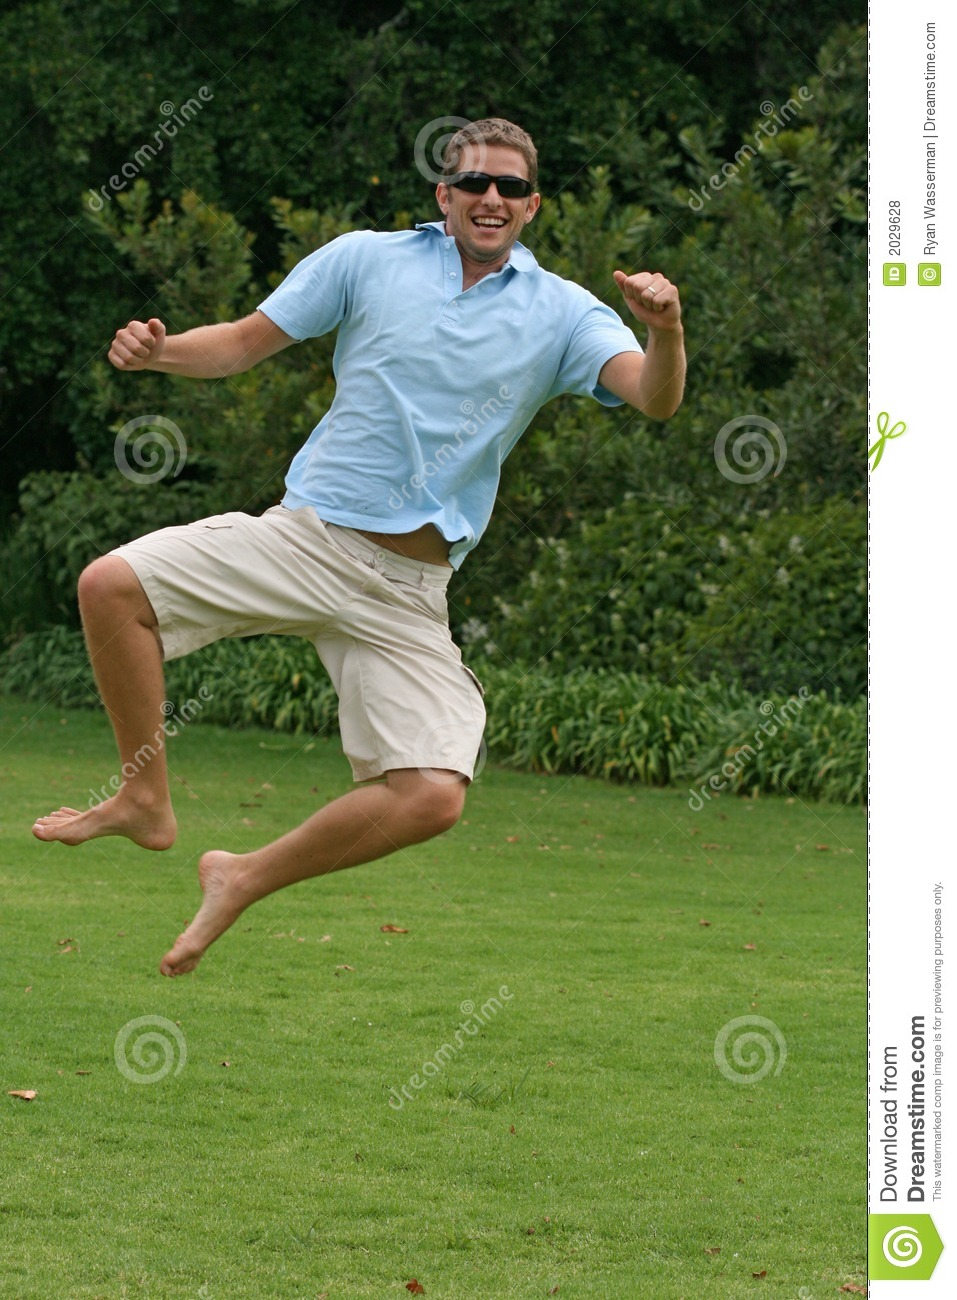 Jumping In Air With Excitement And Happiness Royalty Free ...